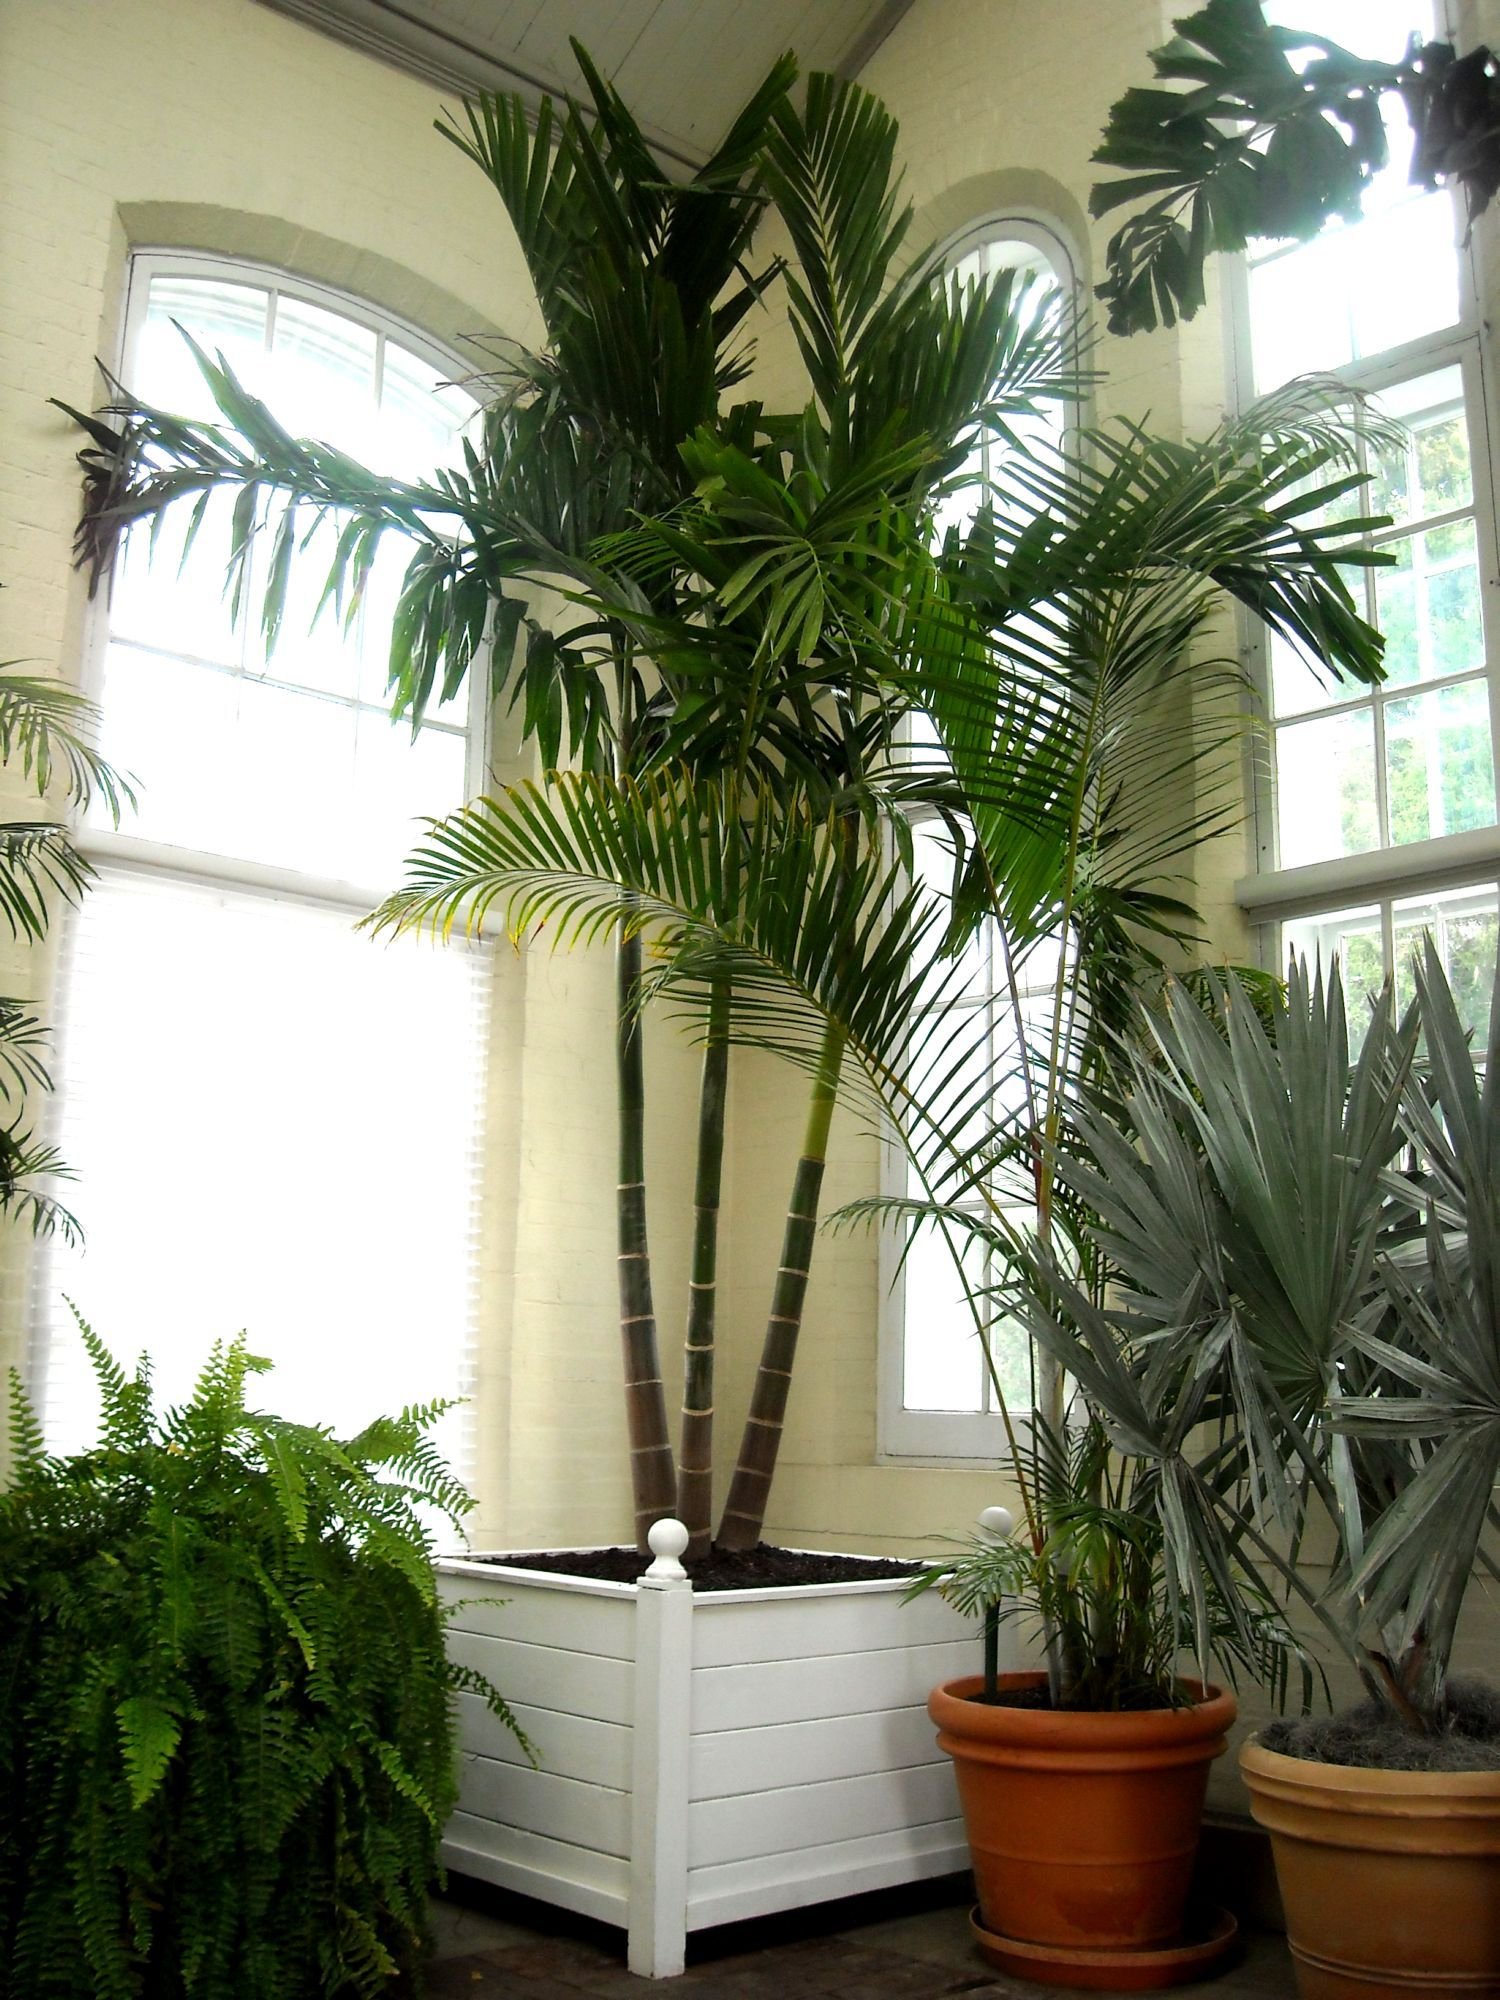 Indoor palms - Buy Real Palm Trees like this by visiting our website ...